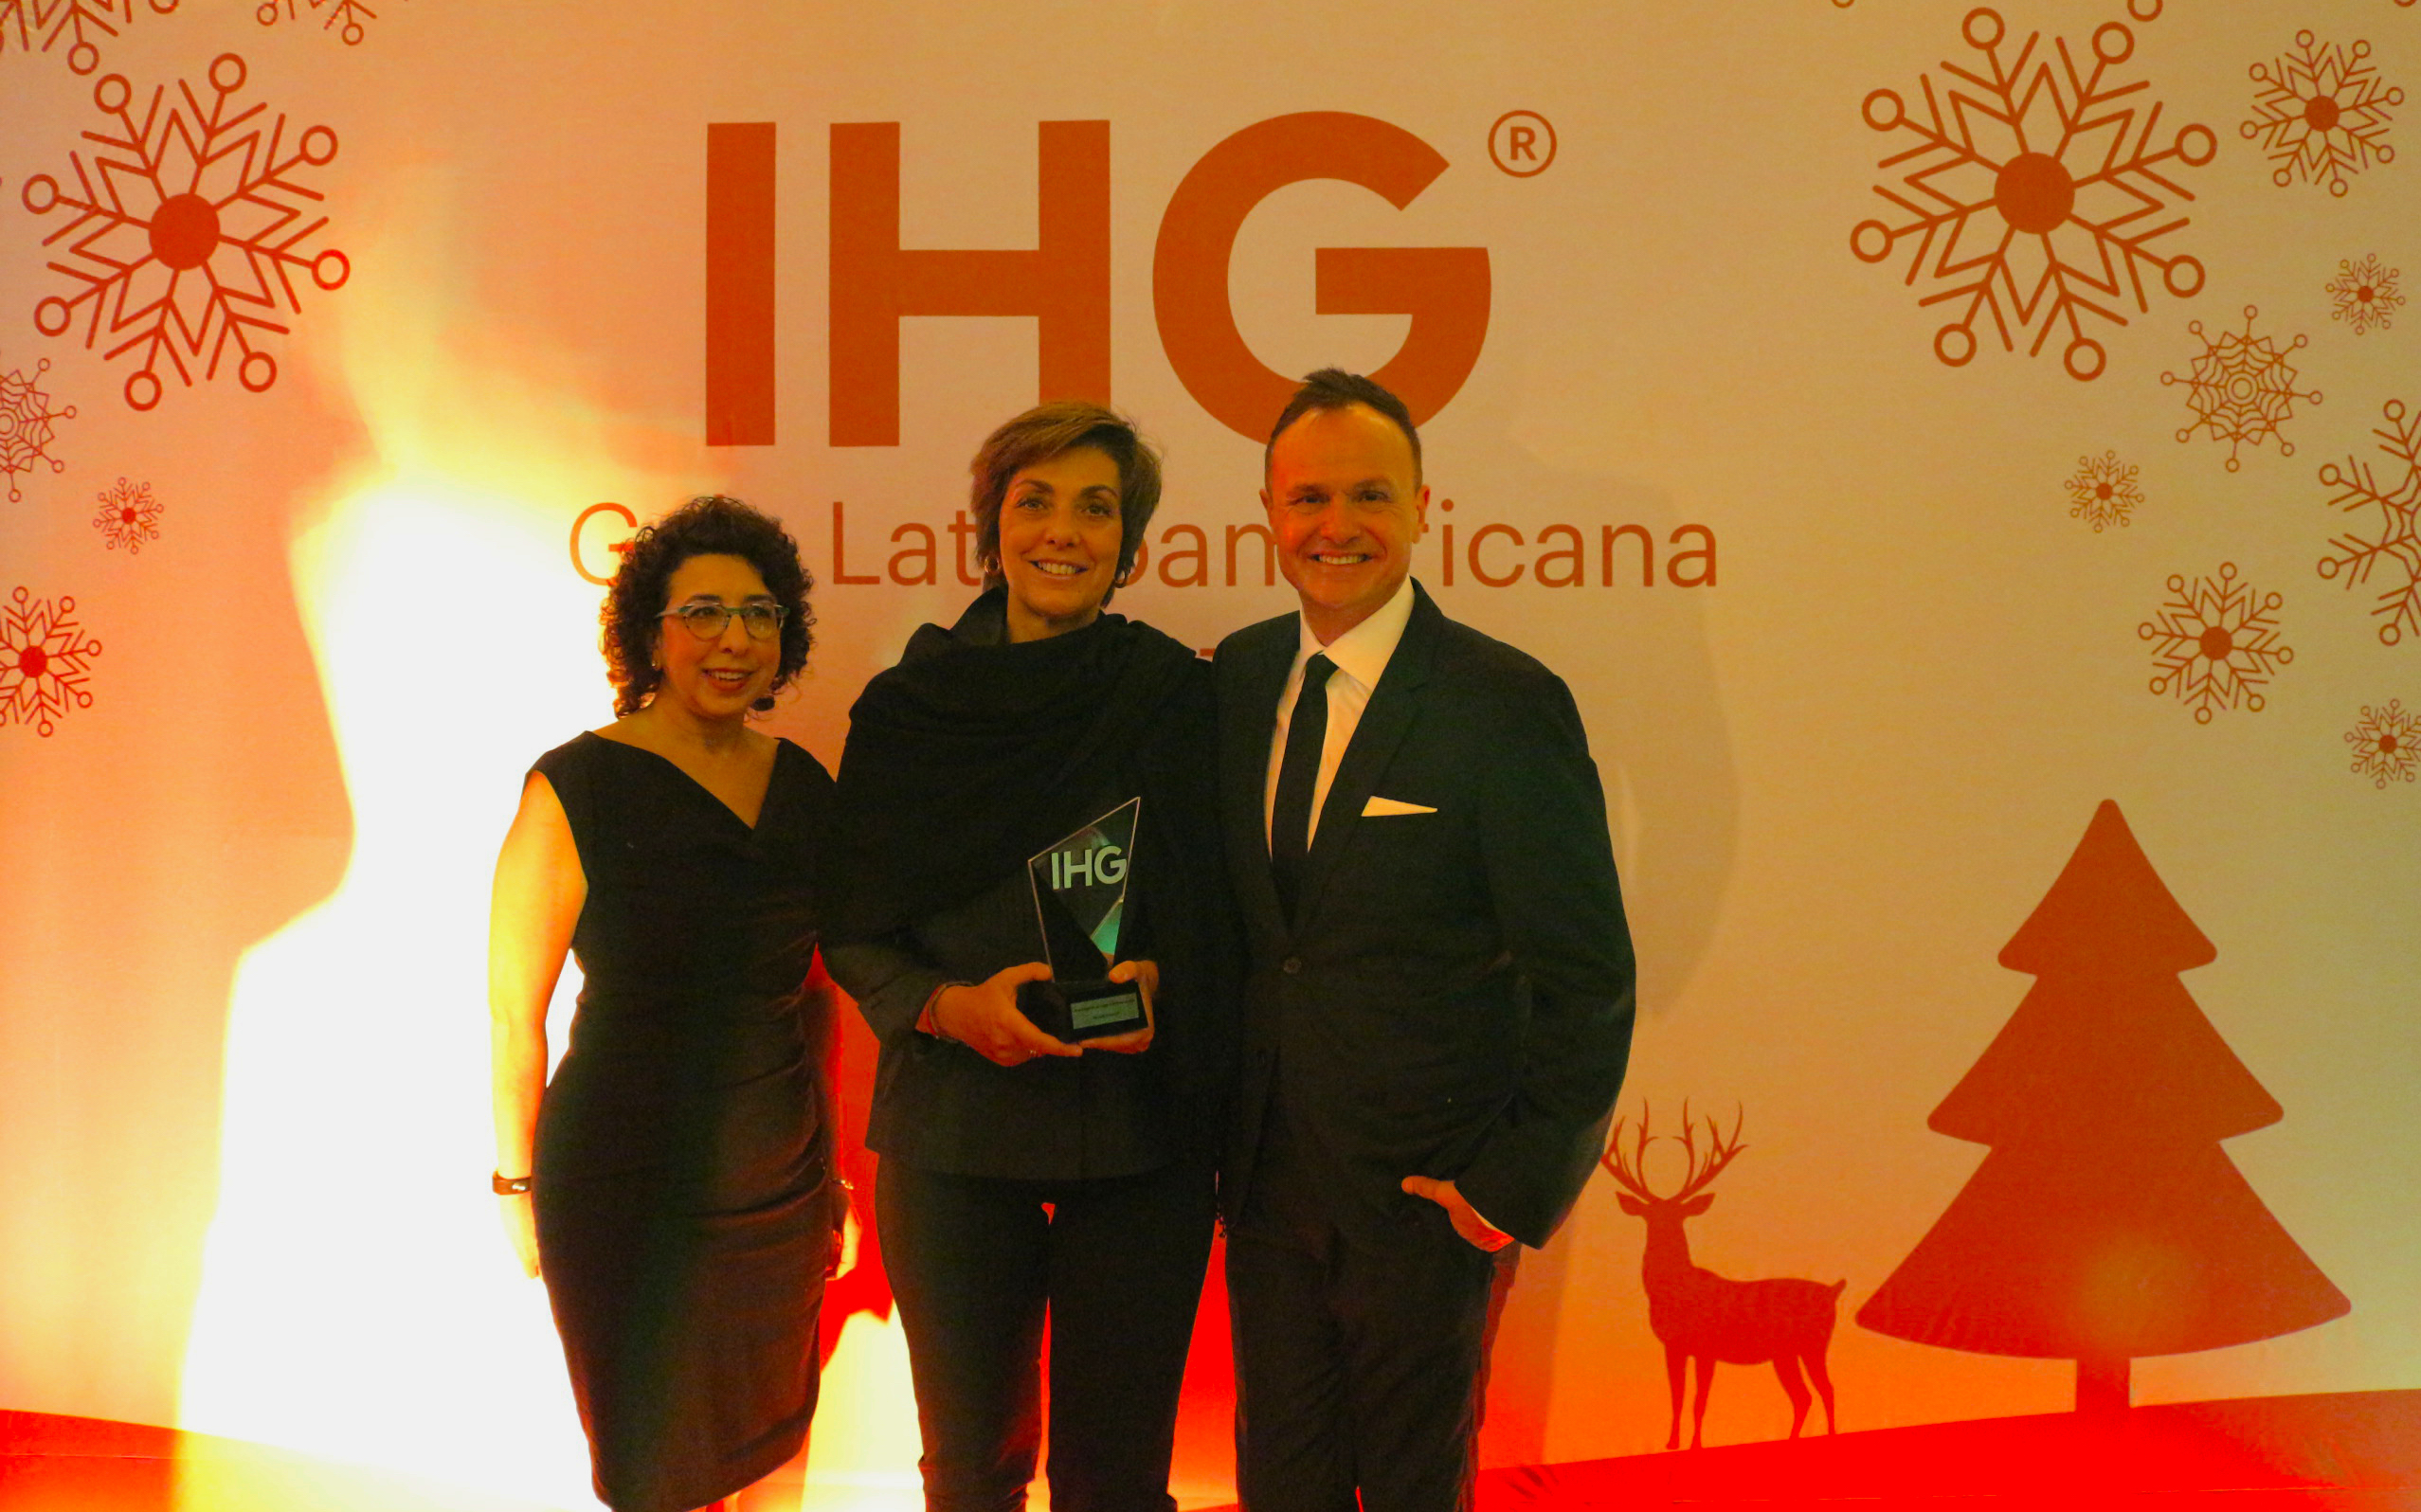 Gayle Weiss, Diretora de Comunicações do InterContinental Hotels Group; Claudia Tonaco, da TRAVEL3, e Gerardo Murray, Vice-presidente Regional de Marcas e Marketing para México, América Latina e Caribe do IHG